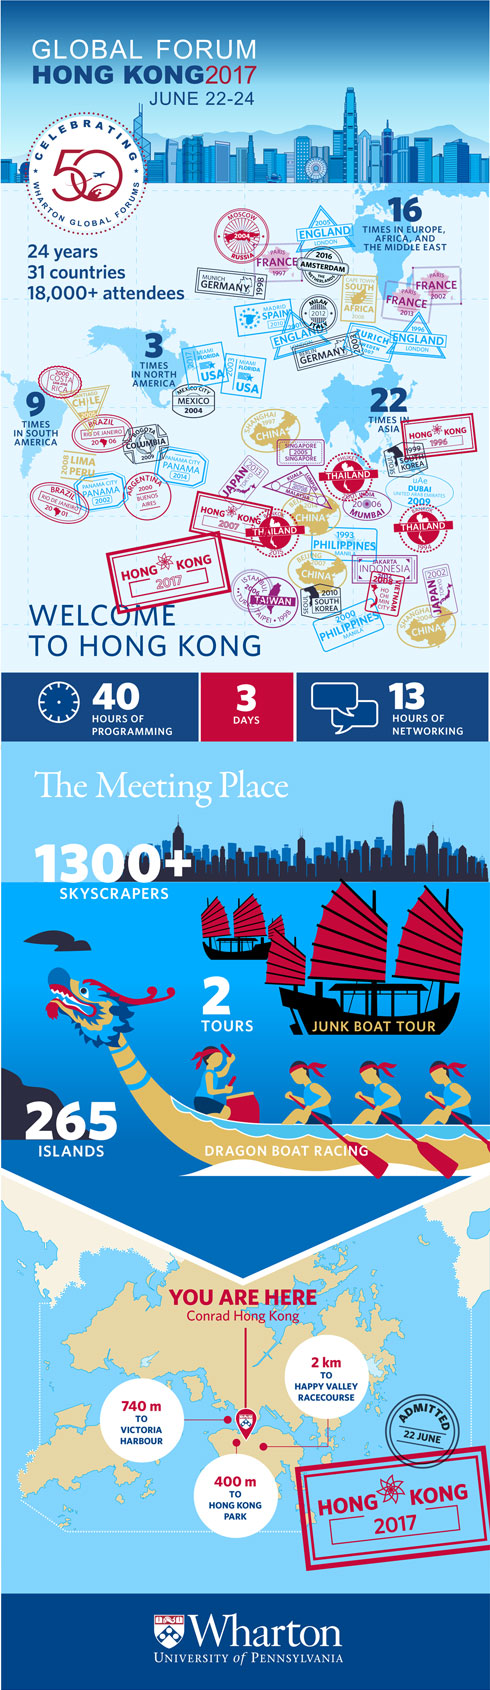 Wharton Business School Global Forum infographic